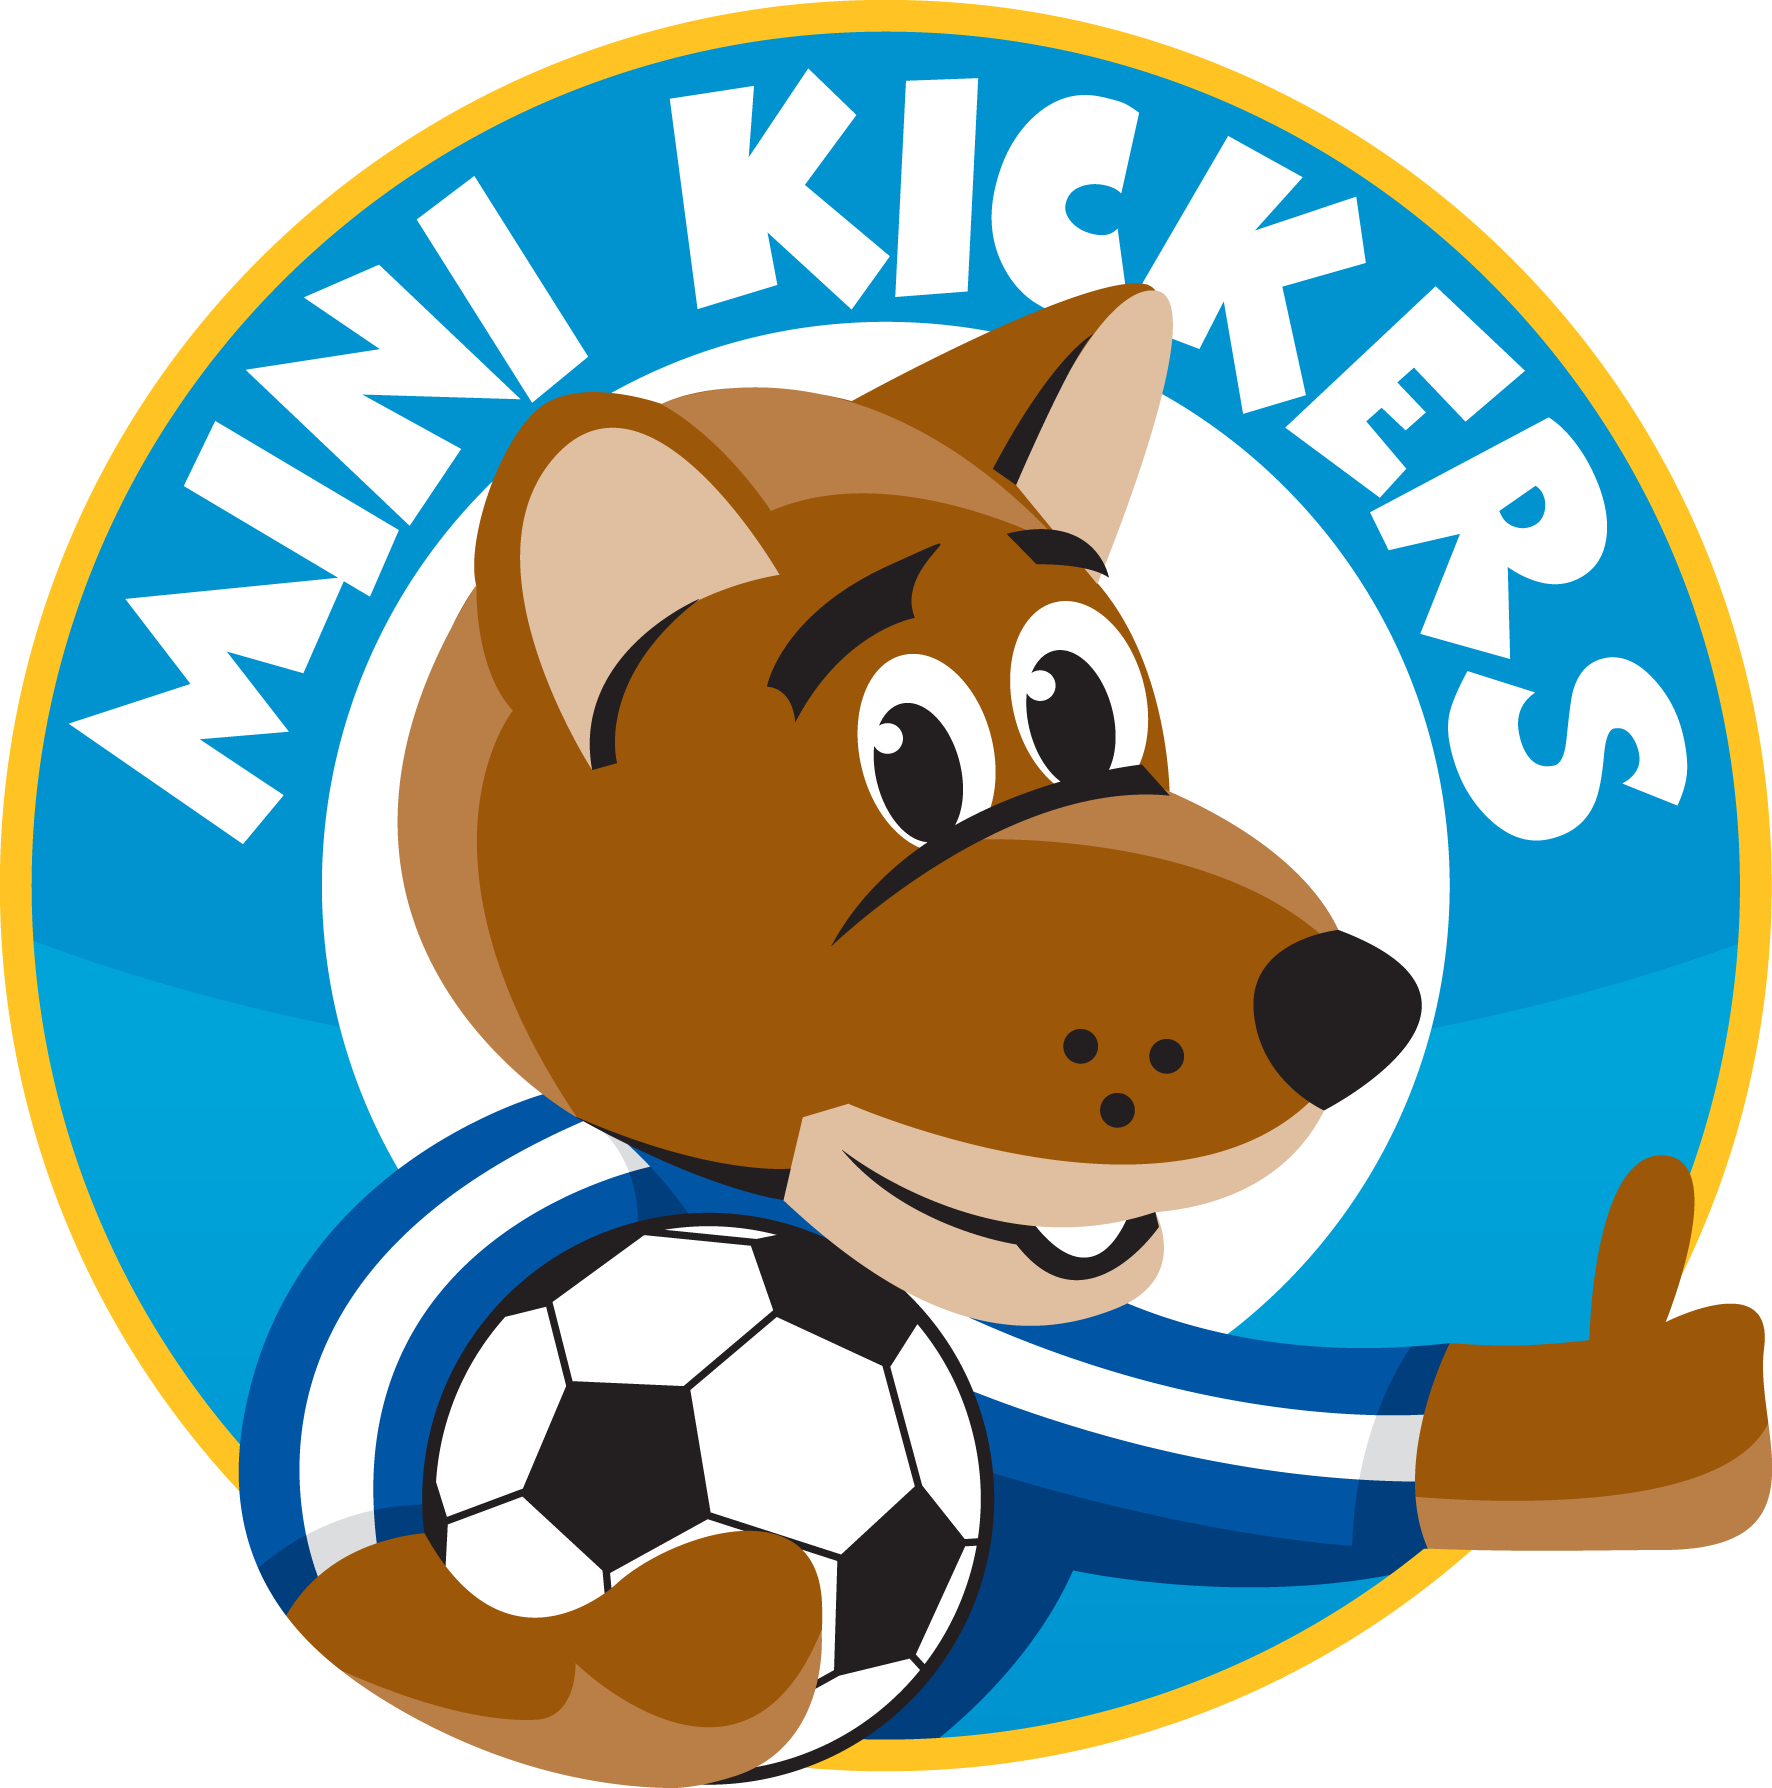 Football kicker clipart clip freeuse download Chester Football Club – Official Website » Chester FC Mini Kickers ... clip freeuse download